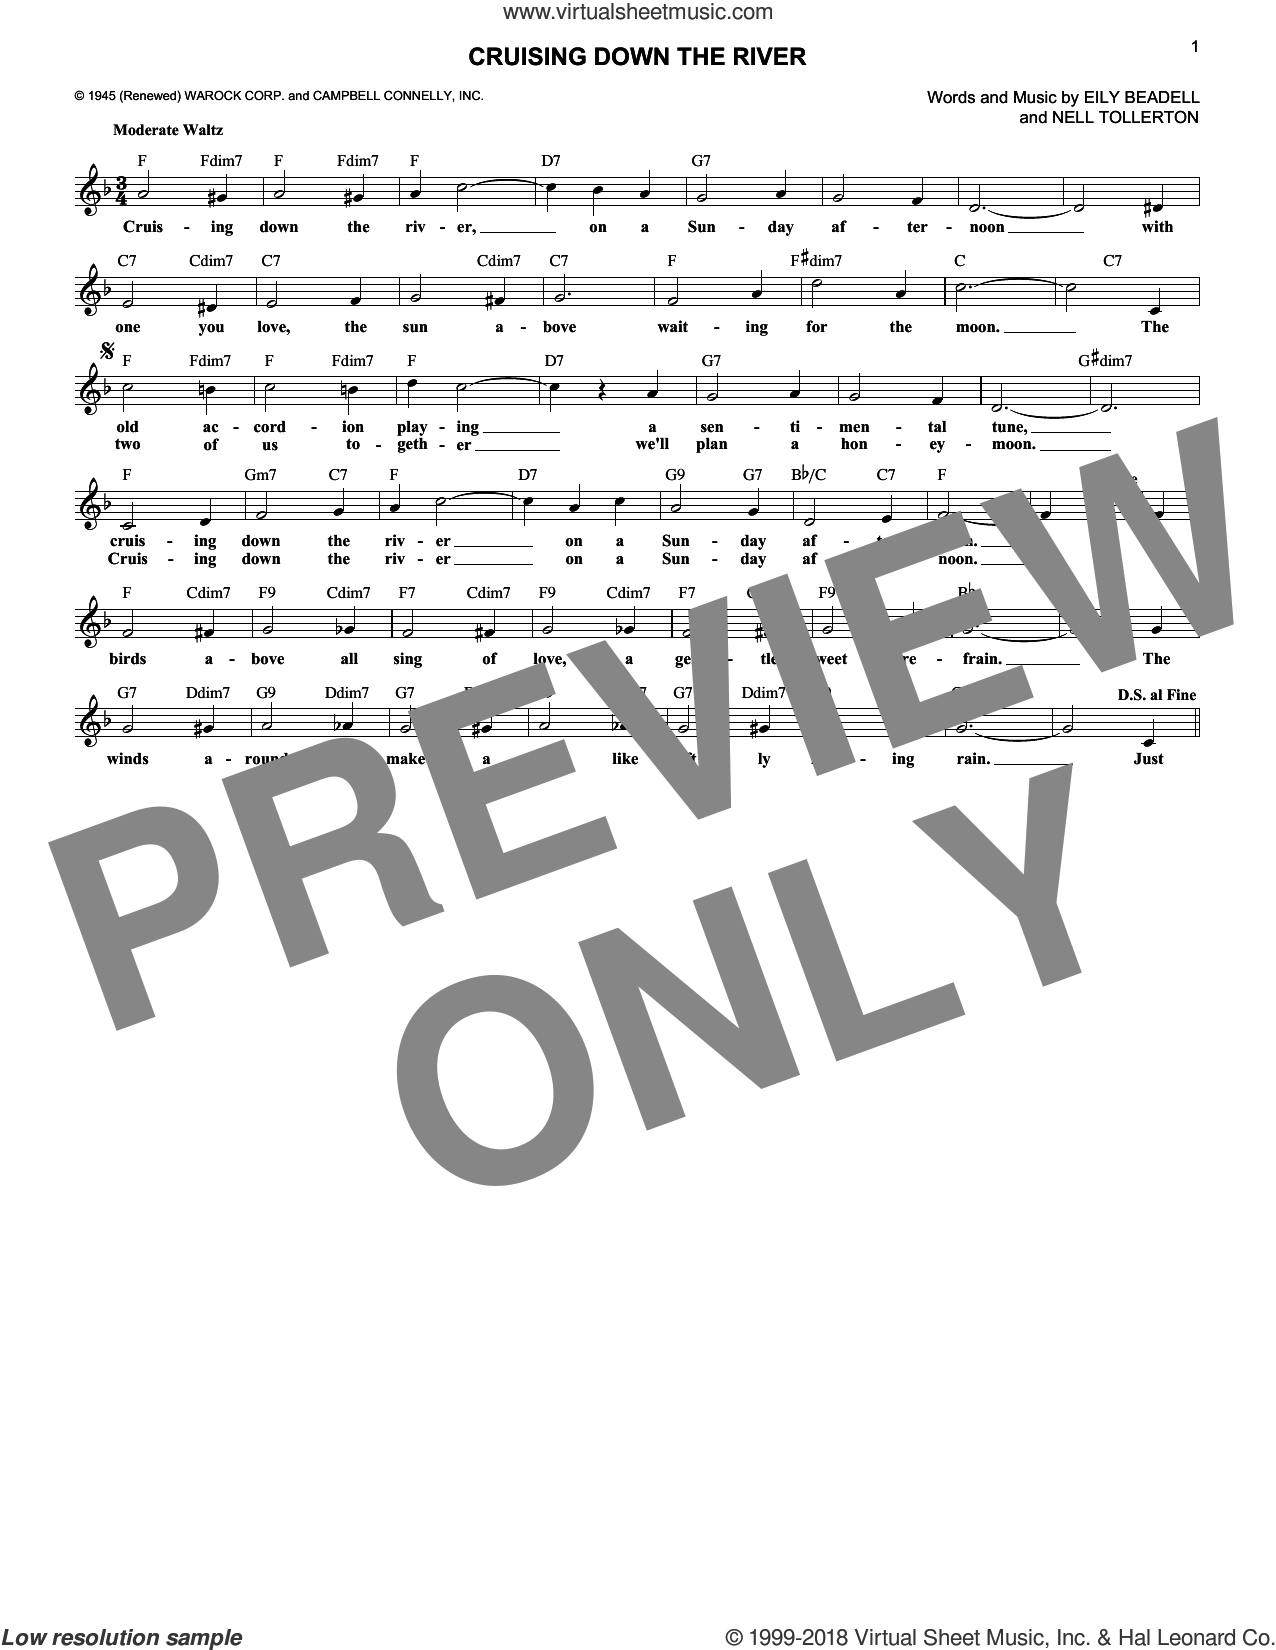 Cruising Down The River sheet music for voice and other instruments (fake book) by Eily Beadell and Nell Tollerton, intermediate skill level